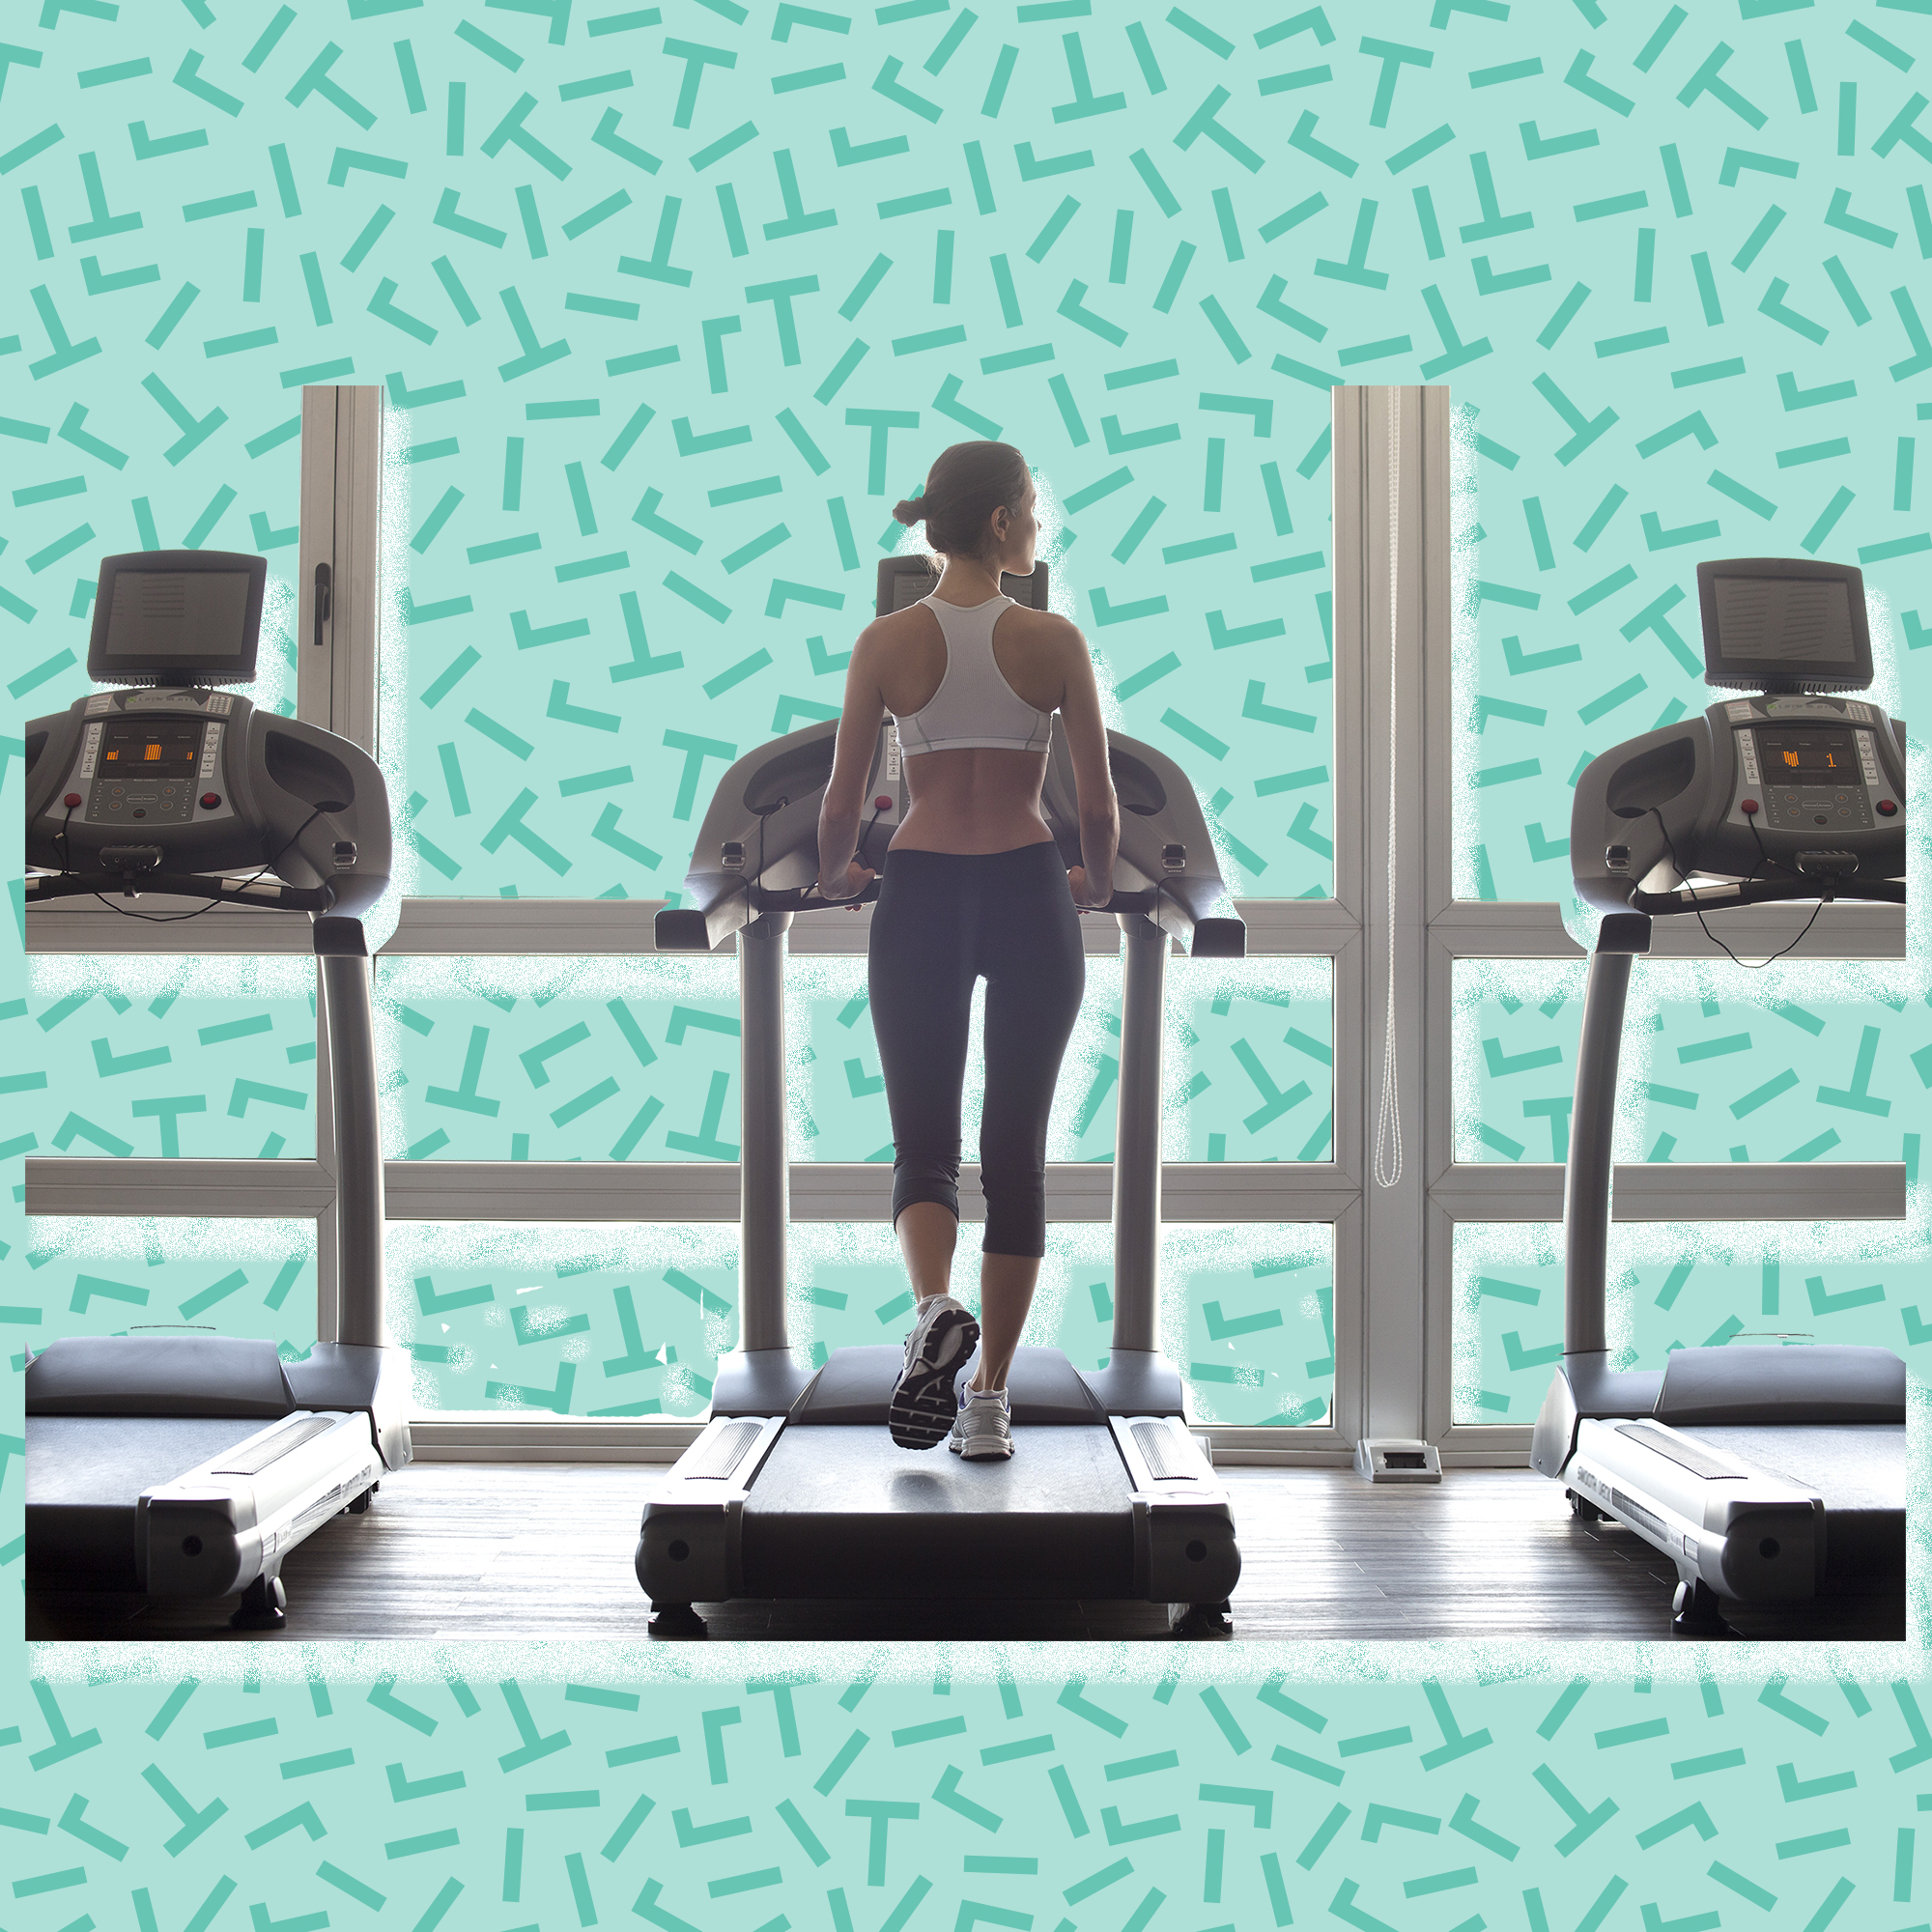 The Best Treadmill You'll Actually Want to Use at Home